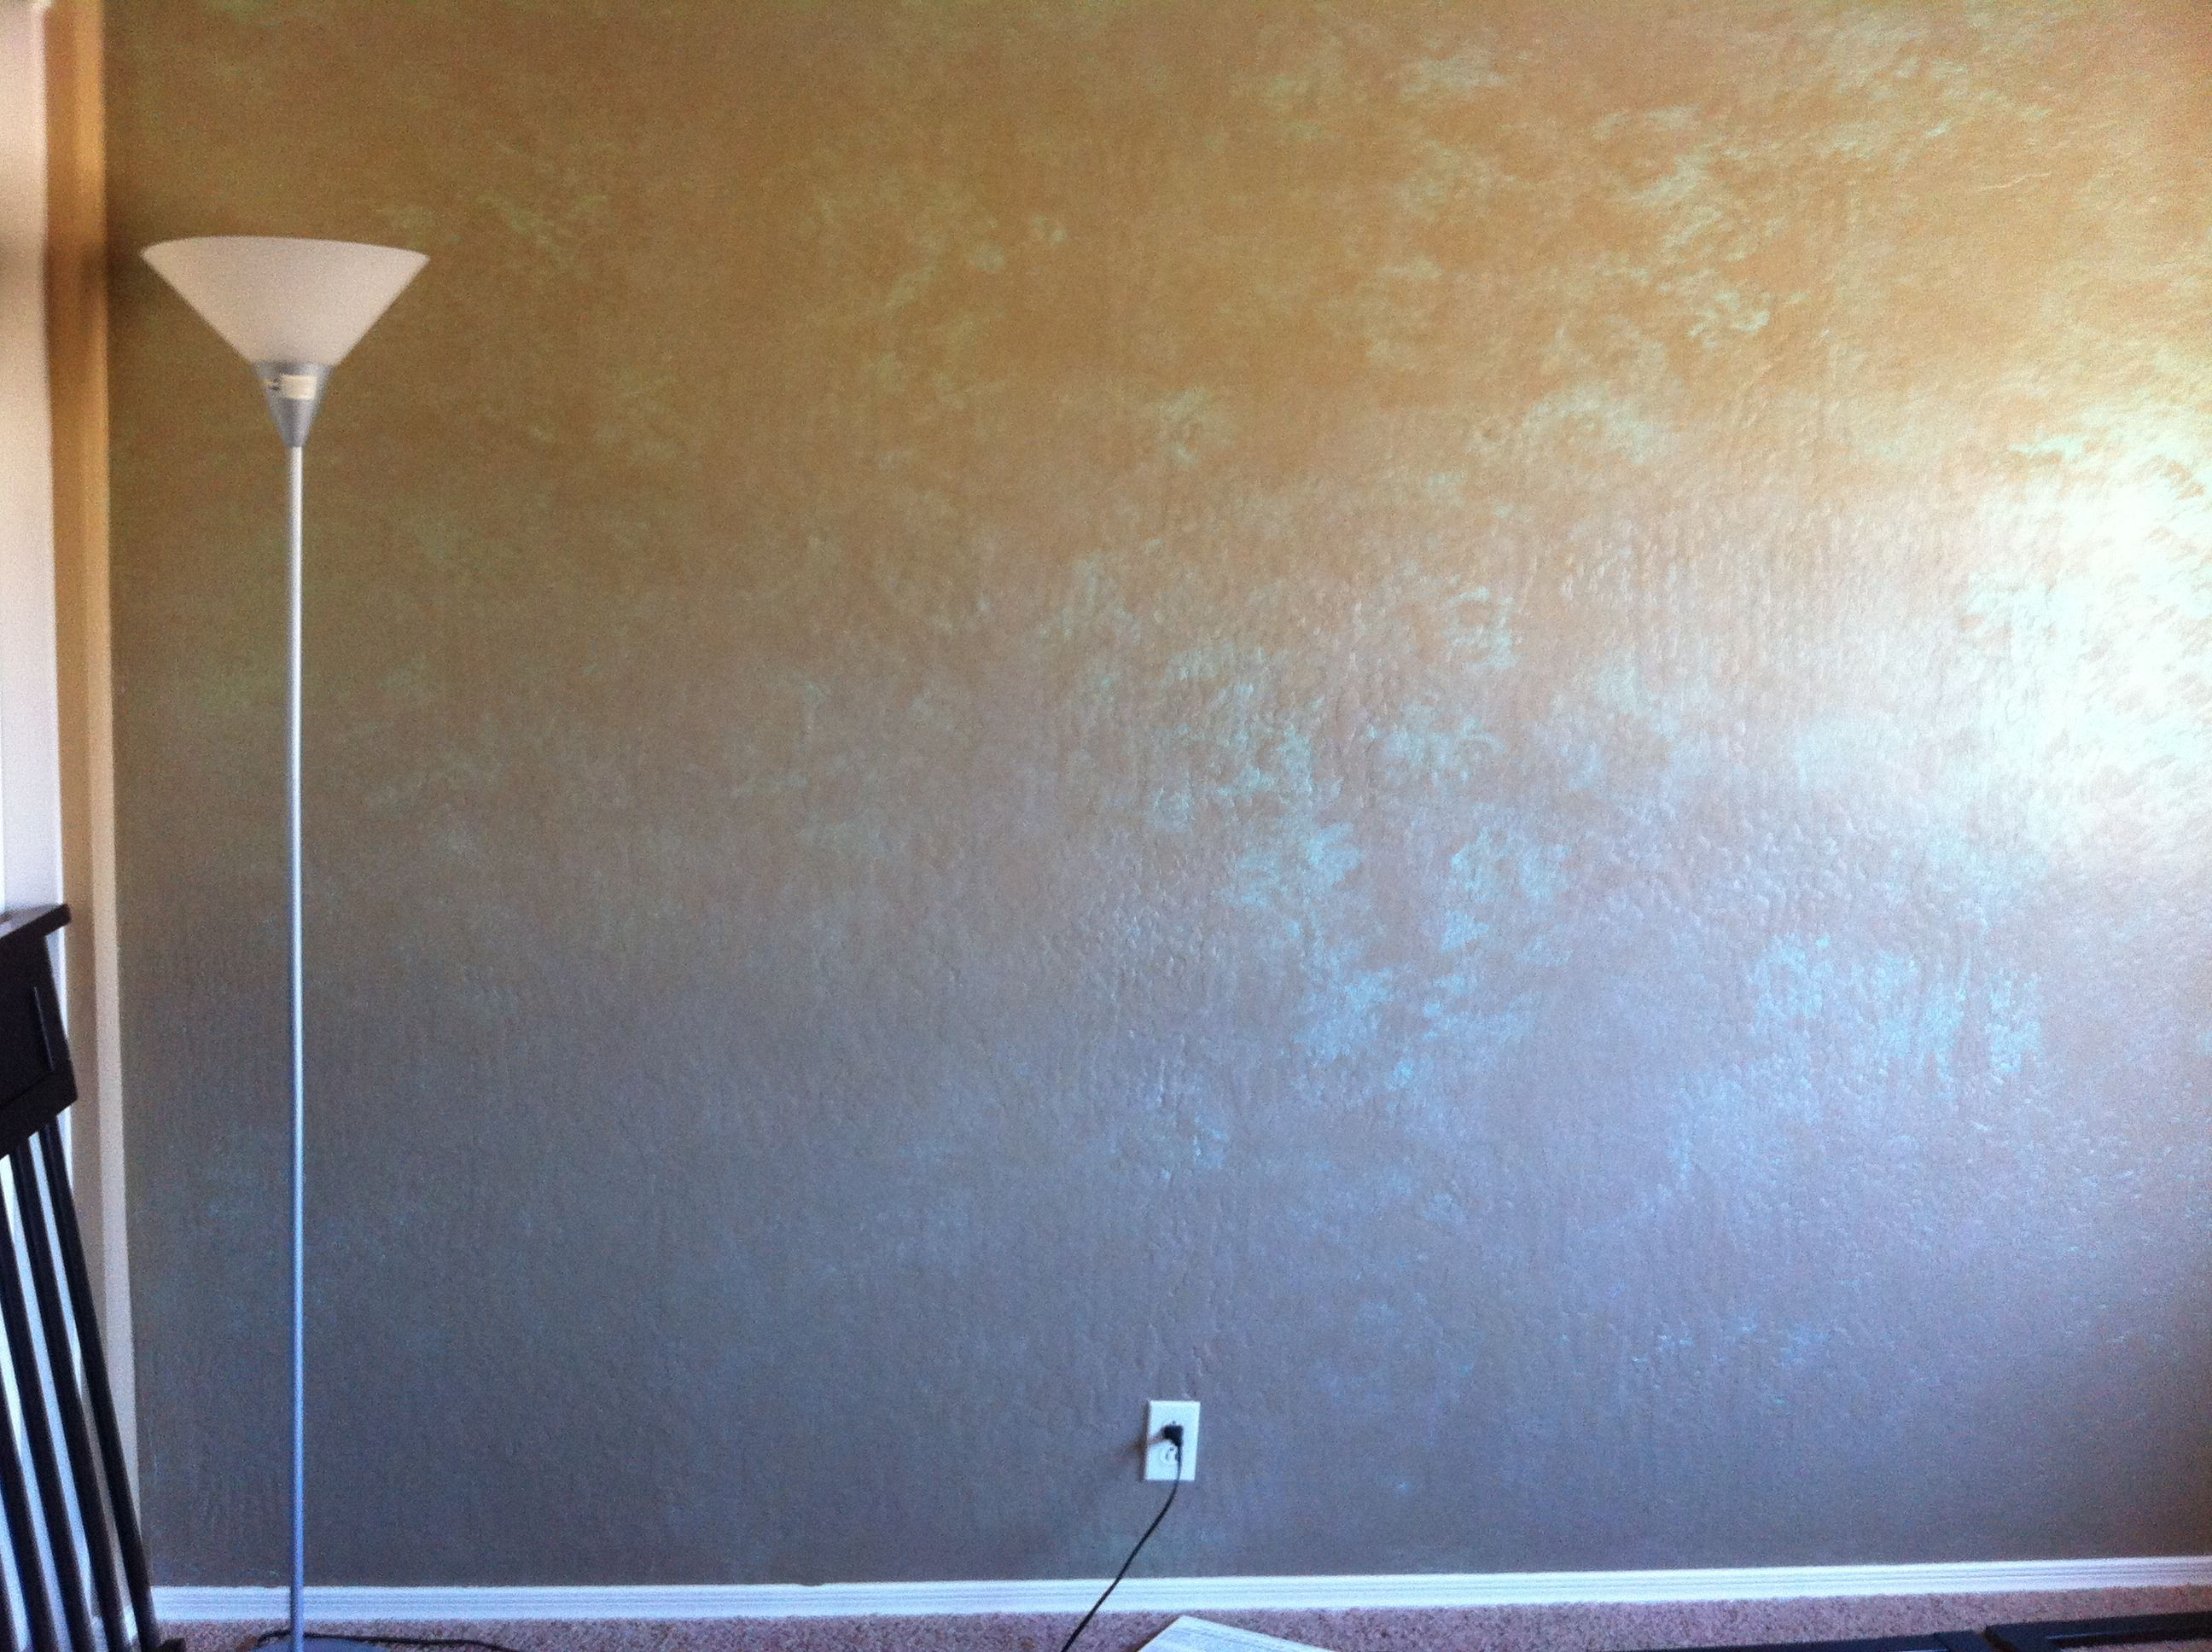 Glitter Sponge Wall Painted With Paint Primer Rolled Extra Fine Irredescent Glitter And Mod Podge Let Dry For A Day Spong Wall Treatments Home Decor Decor